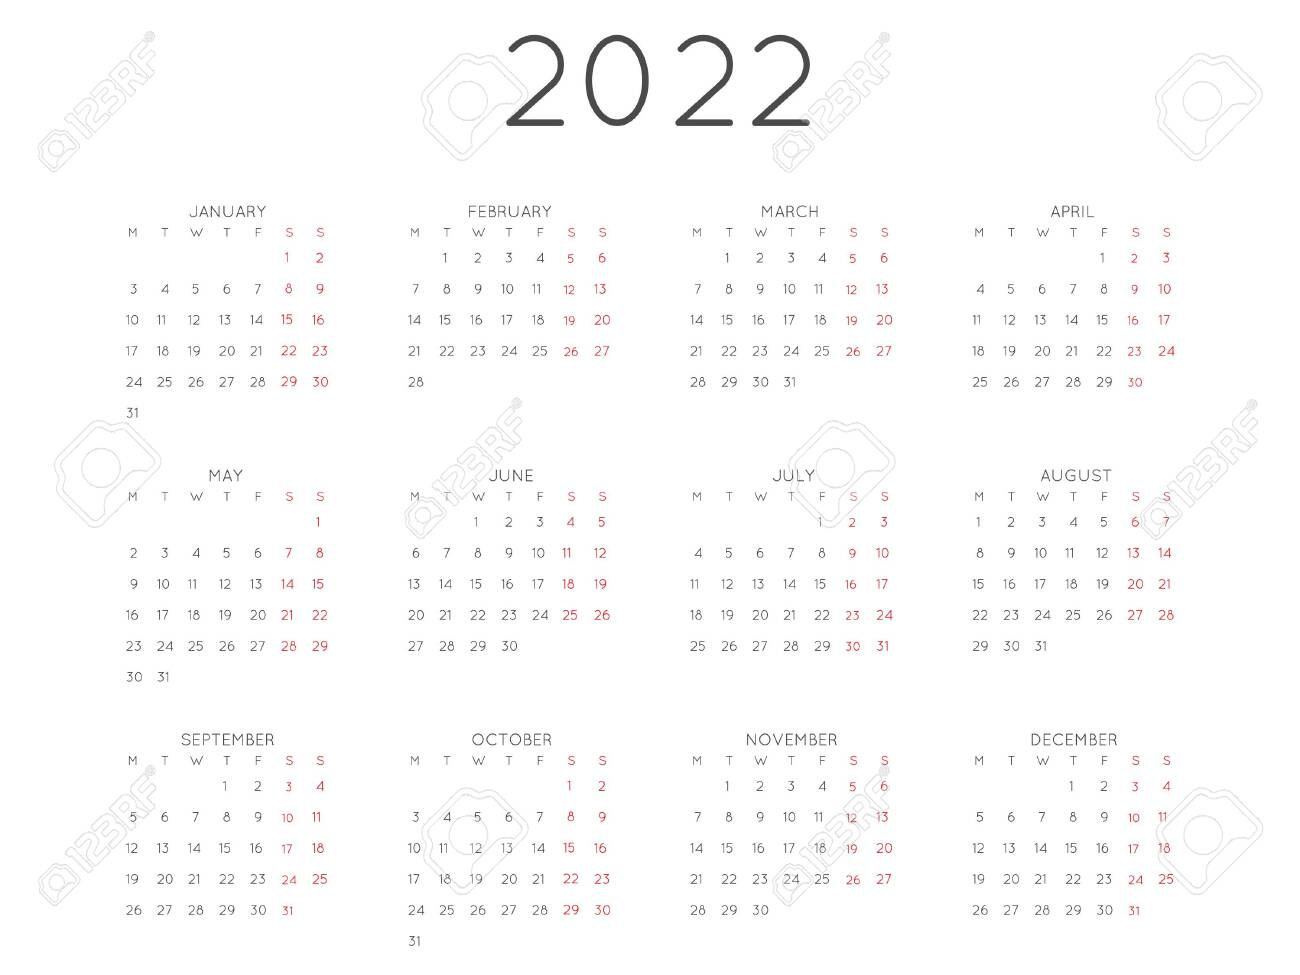 2022 Calendar Monday Start.Calendar 2022 Year Simple Style Week Starts From Monday Royalty Free Cliparts Vectors And Stock Illustration Image 141965847